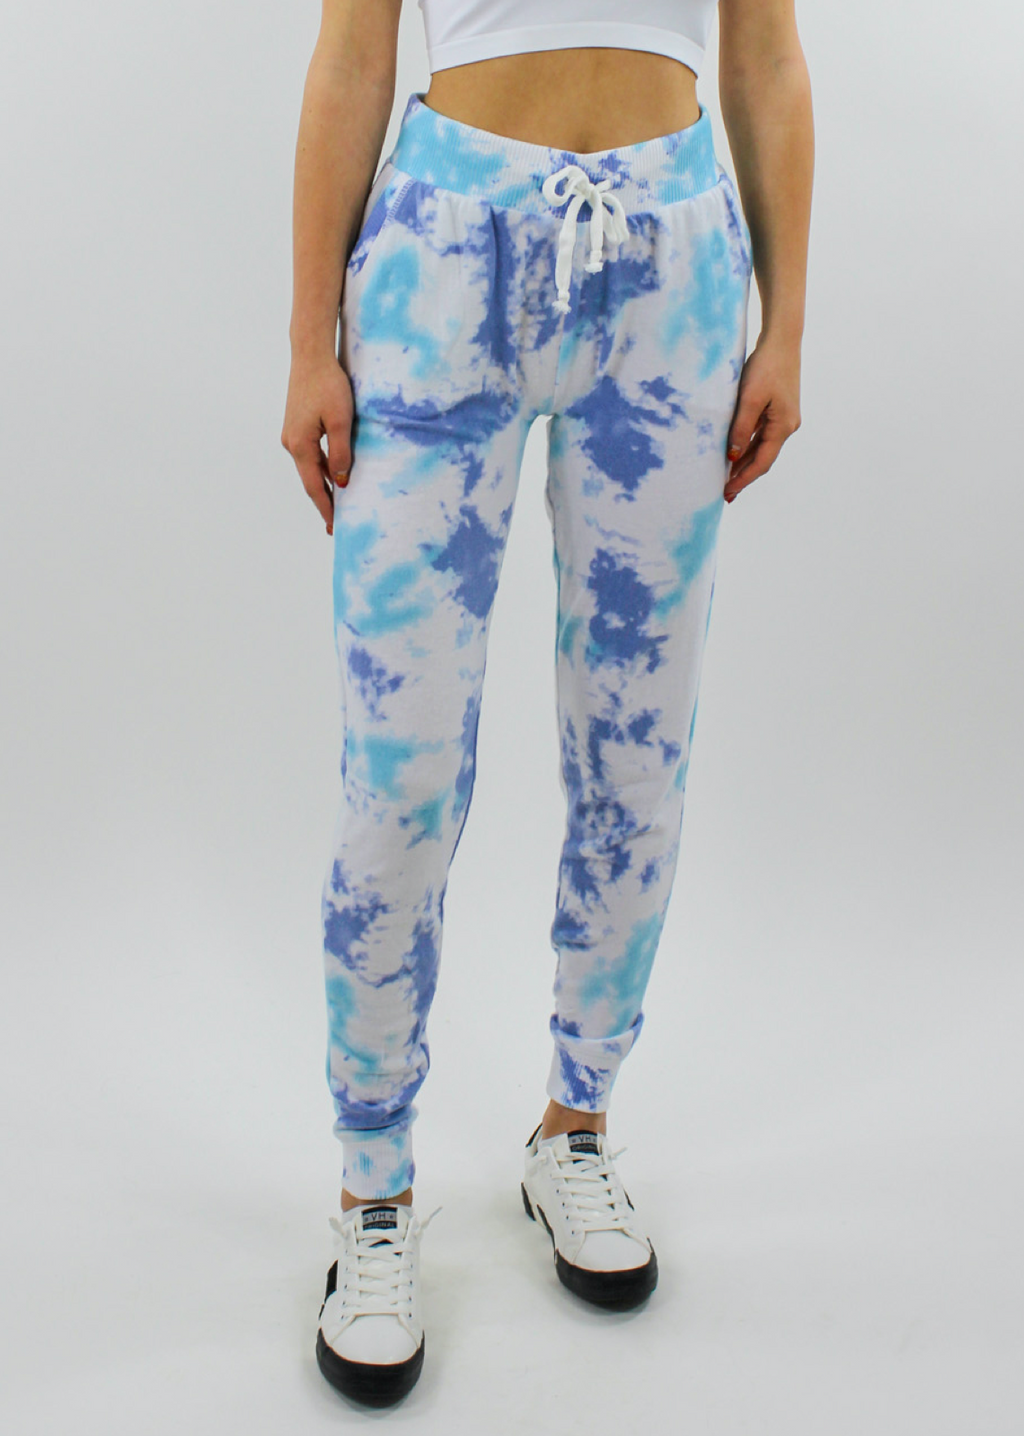 Don't Kill My Vibe Joggers ★ Tie Dye - Rock N Rags